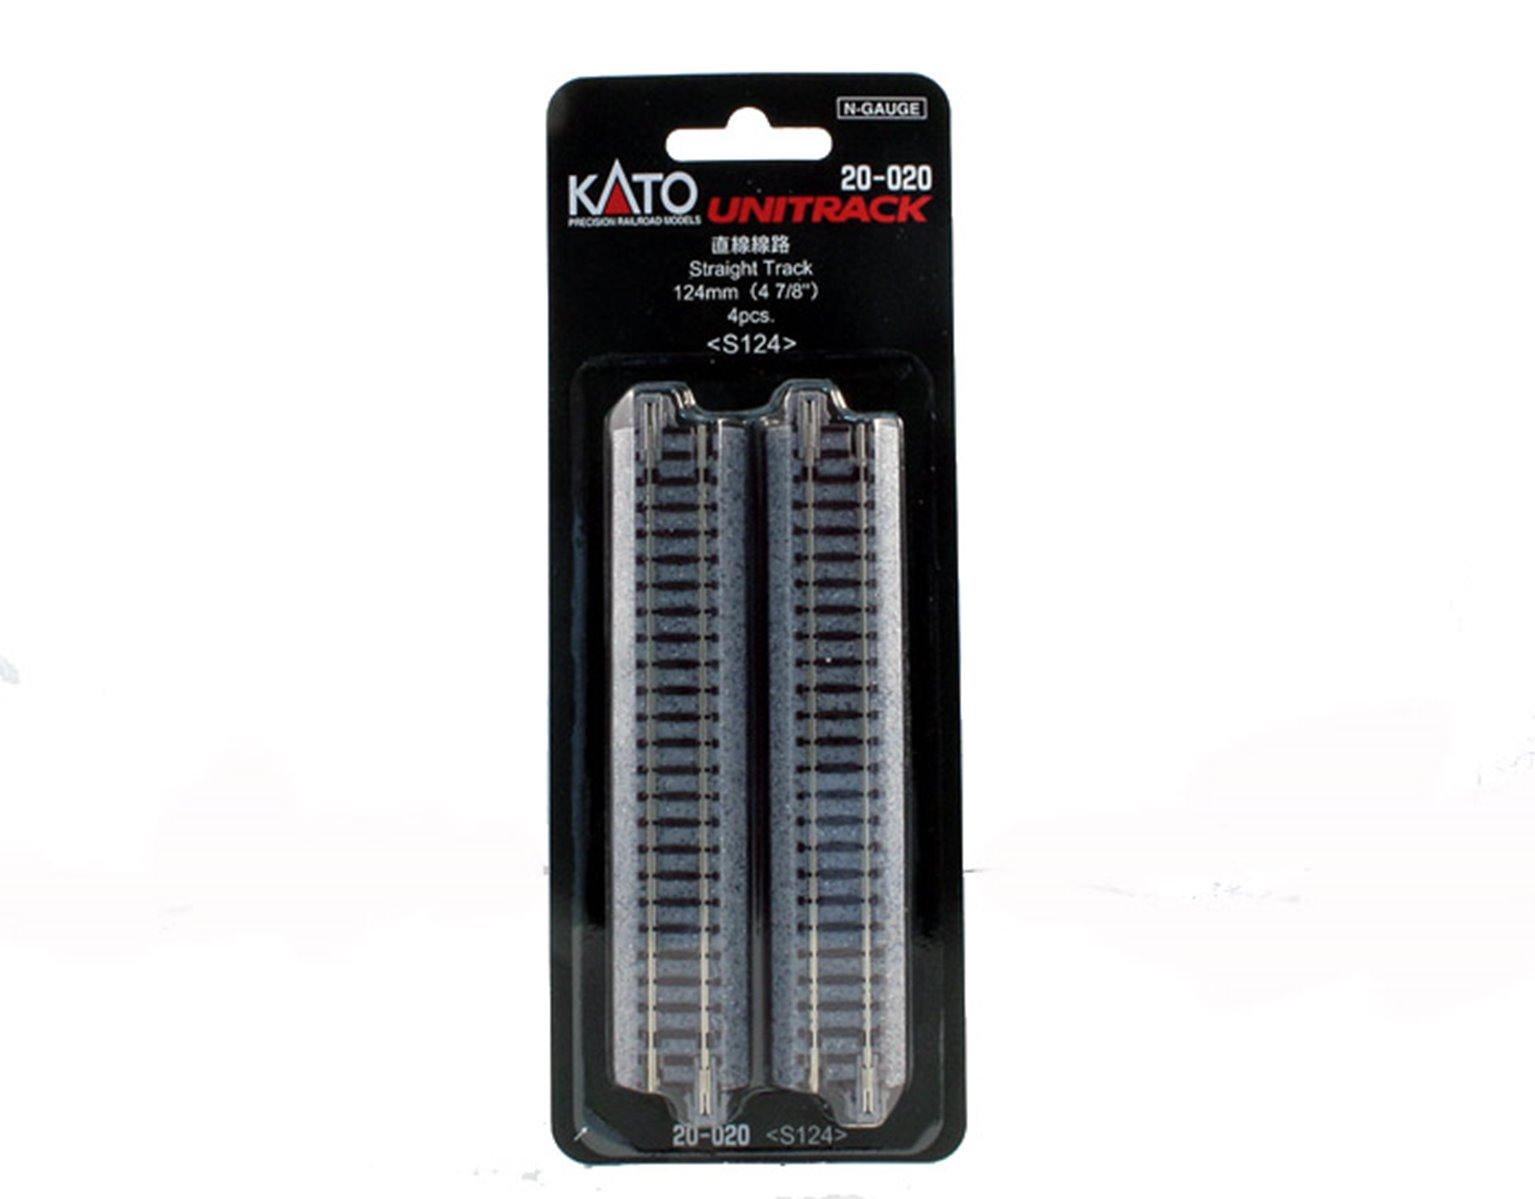 Kato 20-020 Ground Level 124mm Straight Track (4)